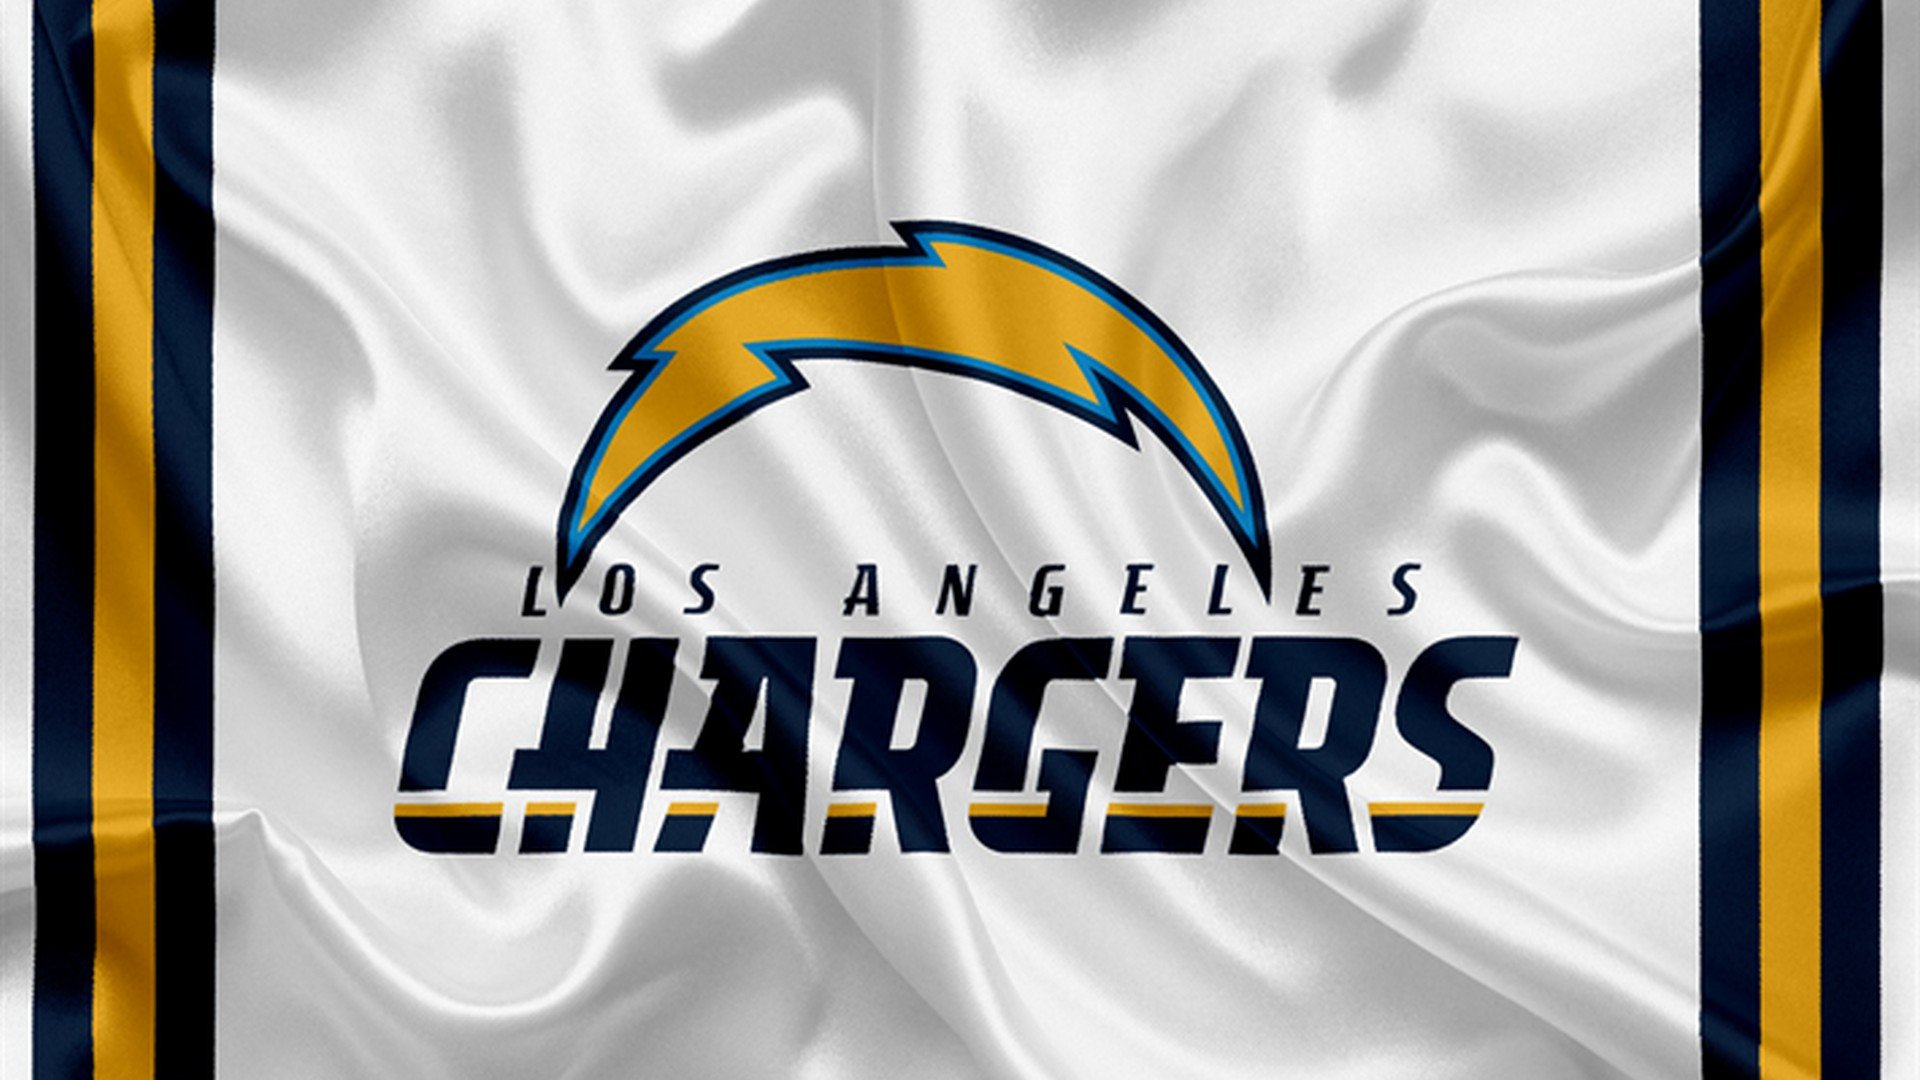 Los Angeles Chargers Wallpapers Top Free Los Angeles Chargers Backgrounds Wallpaperaccess